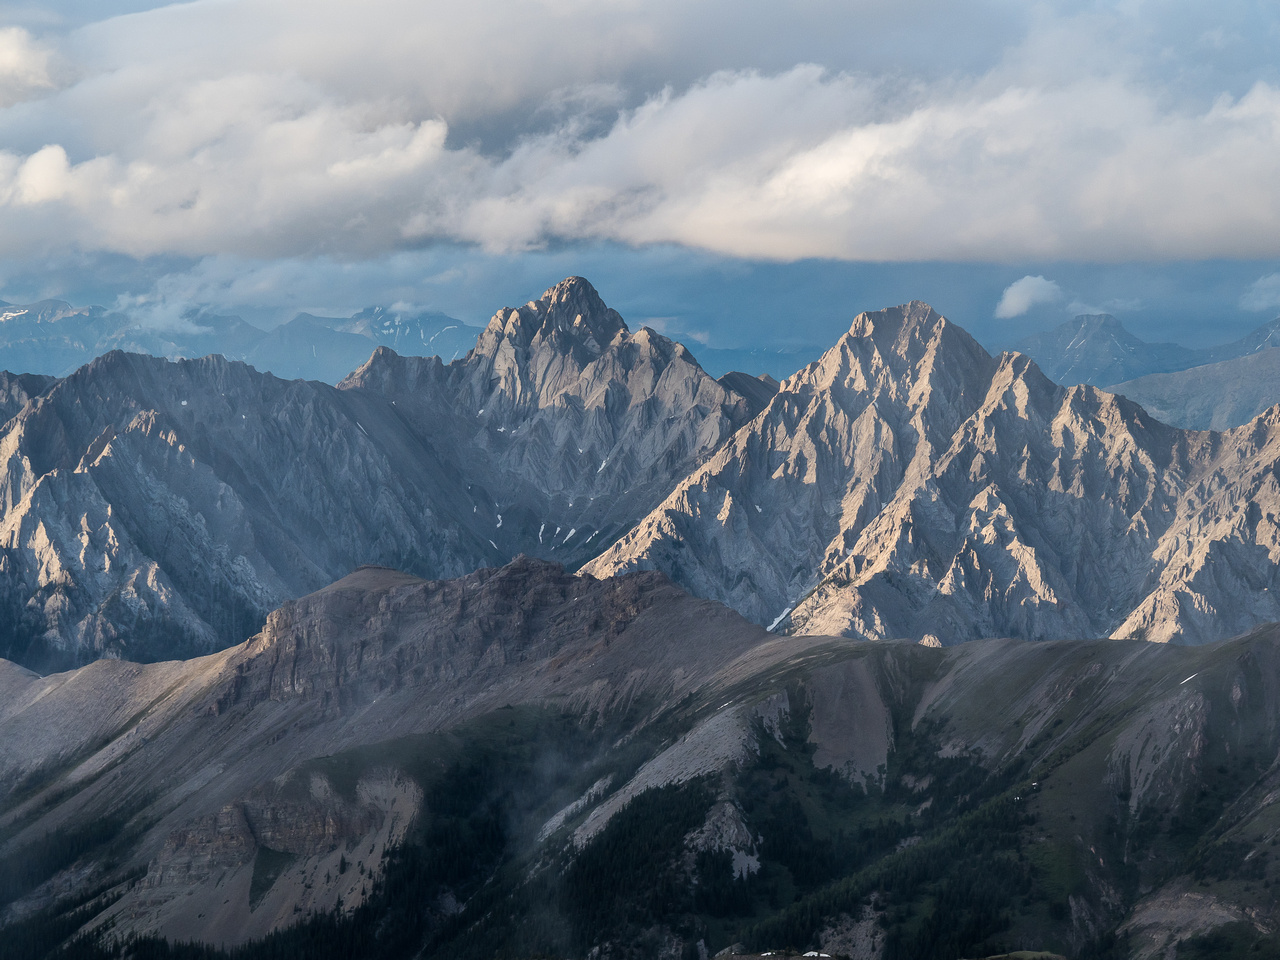 Setting sun highlights the jagged ridges on peaks in the Sundance Range. Good thing not too many of these peaks are named because they don't look easy!